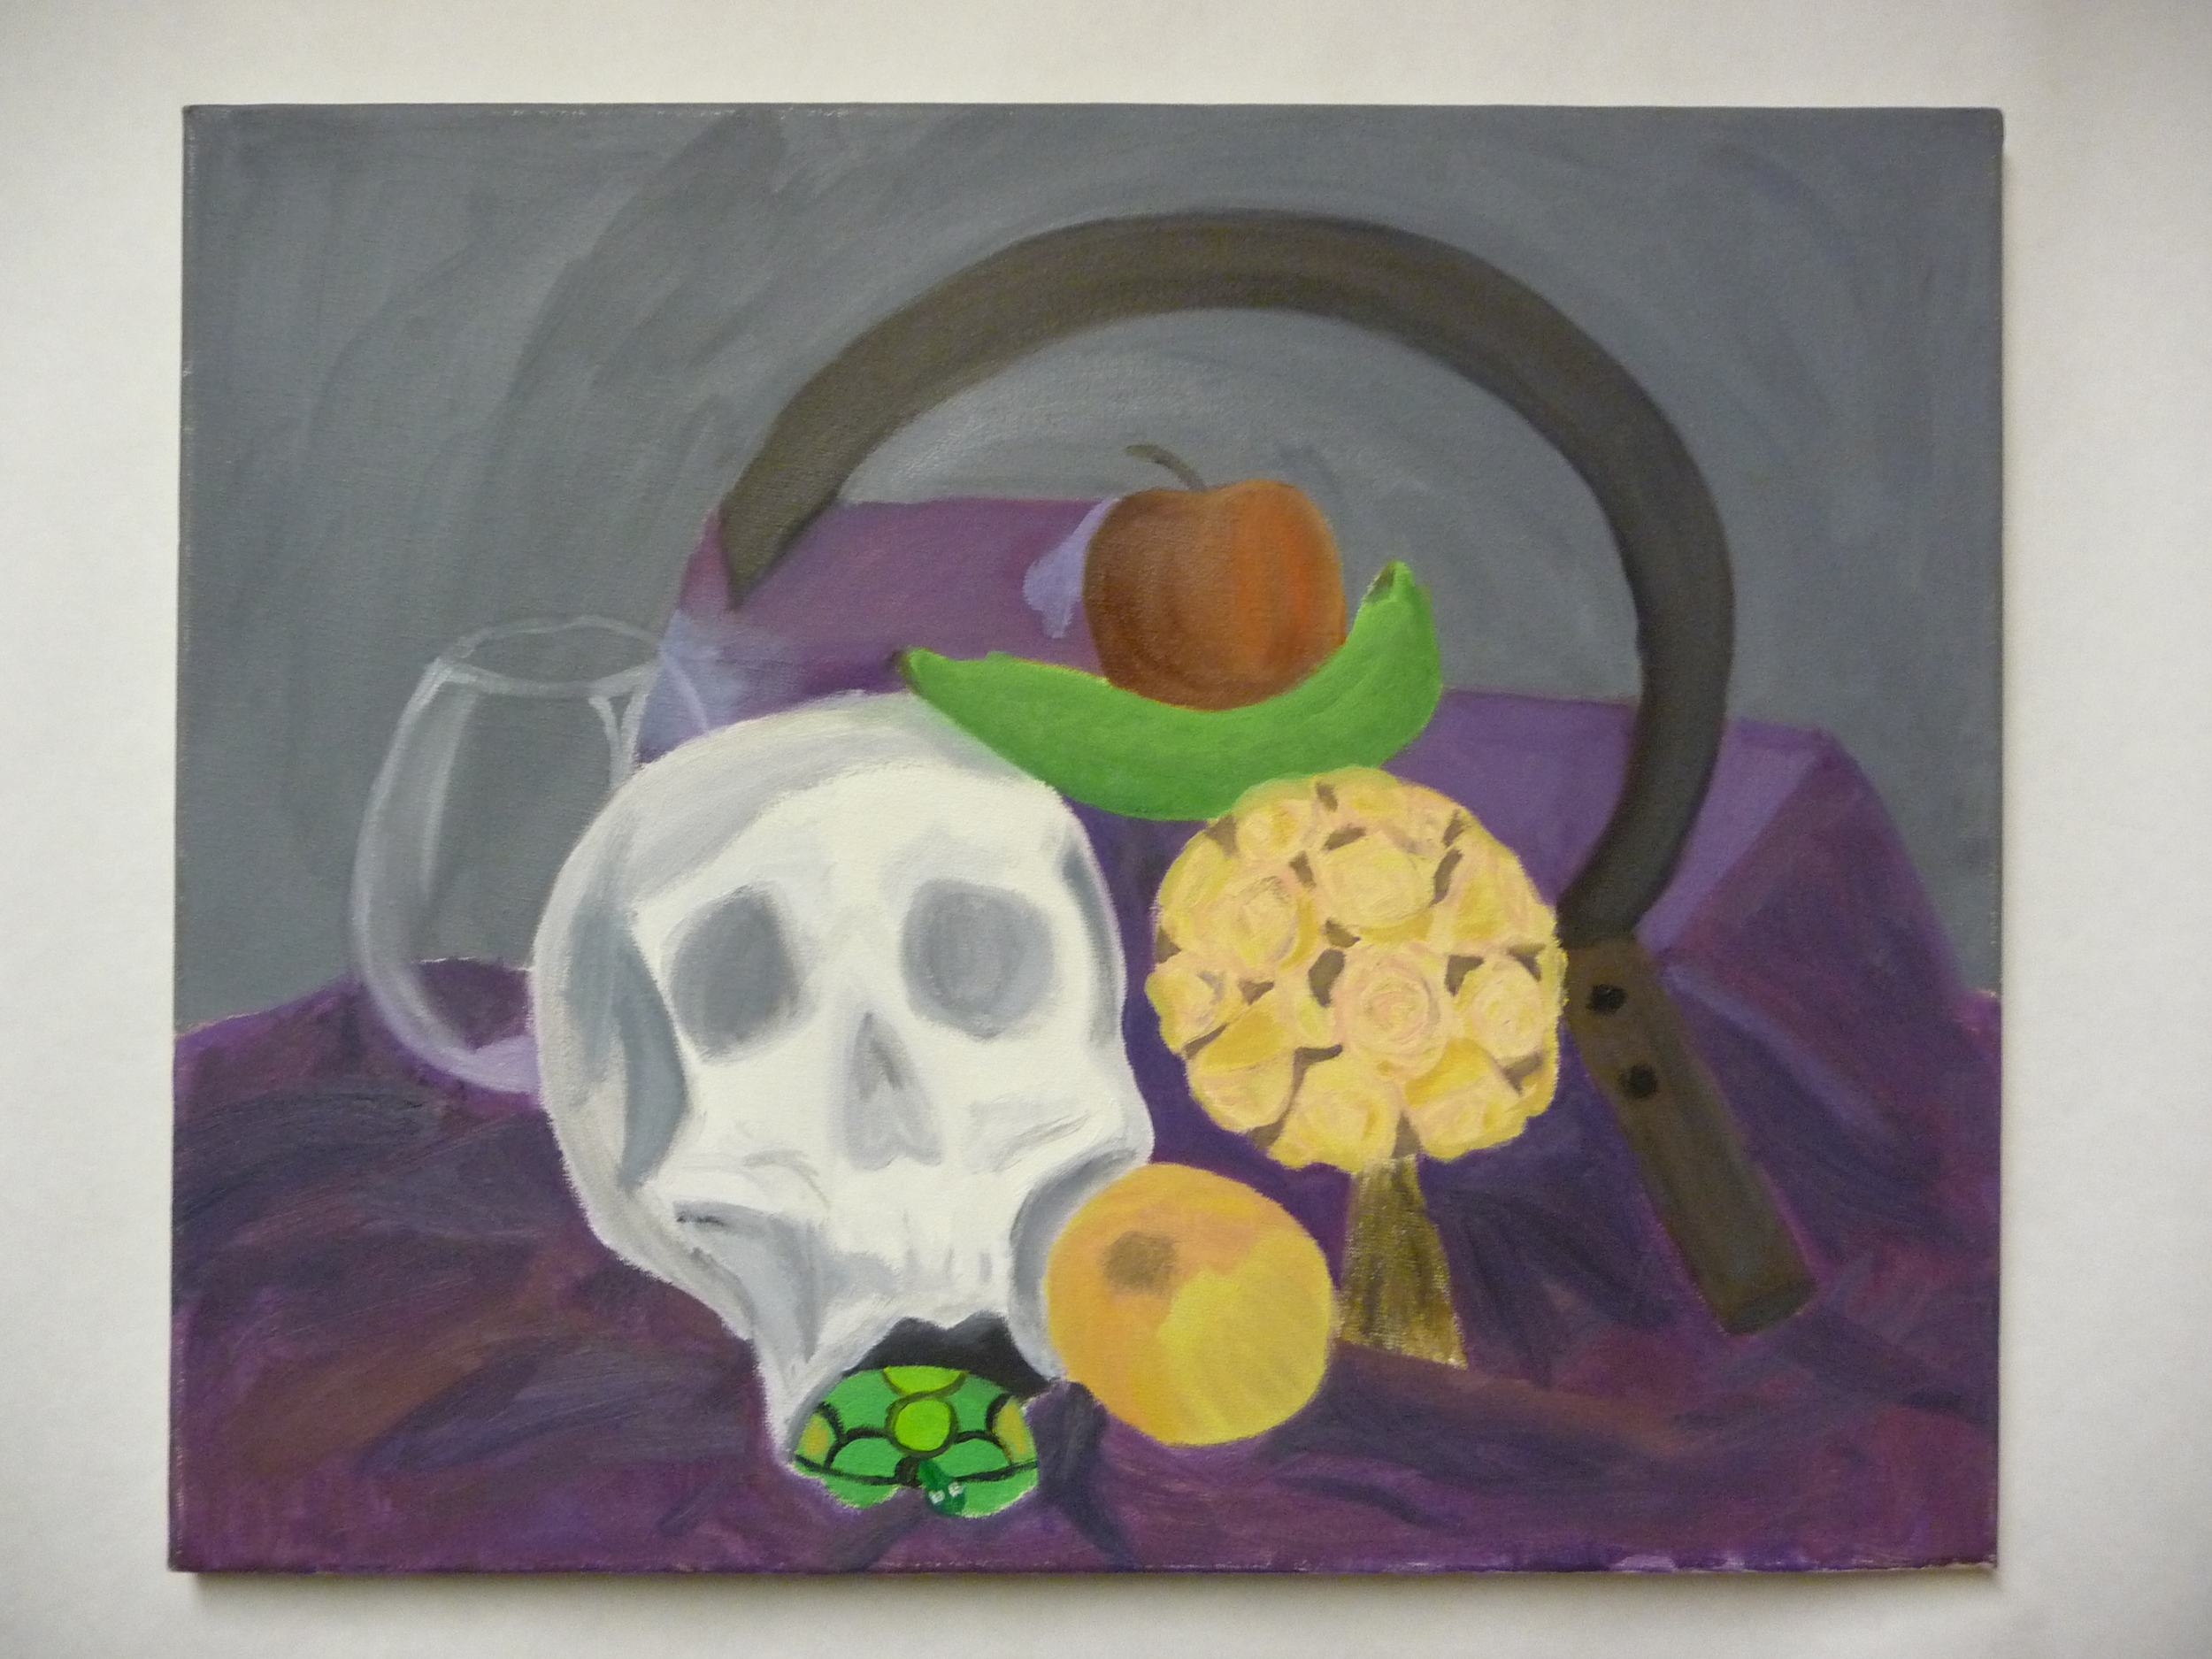 Sickle and Skull Still Life